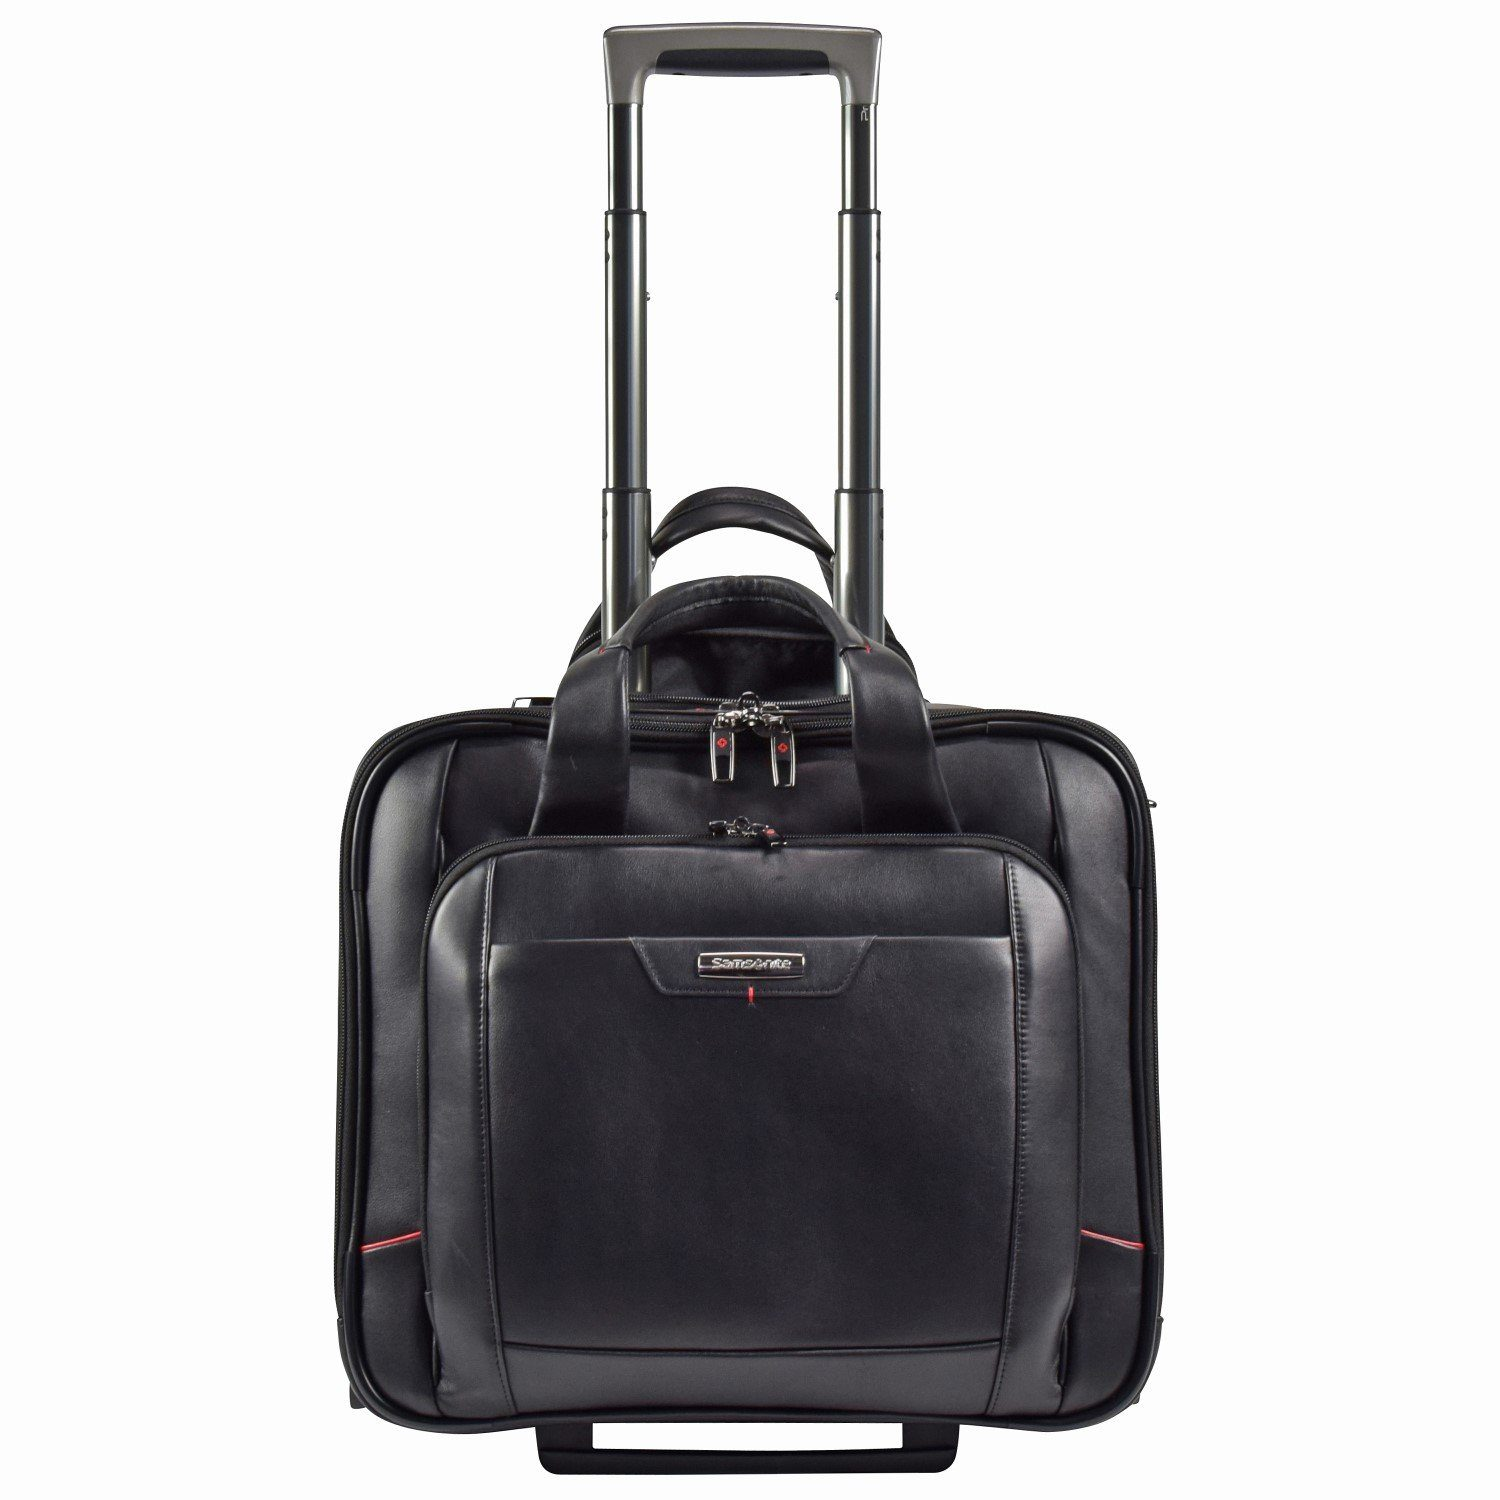 Samsonite Pro-DLX 4 LTH 2-Rollen Business Trolley Leder 43cm Laptopfach